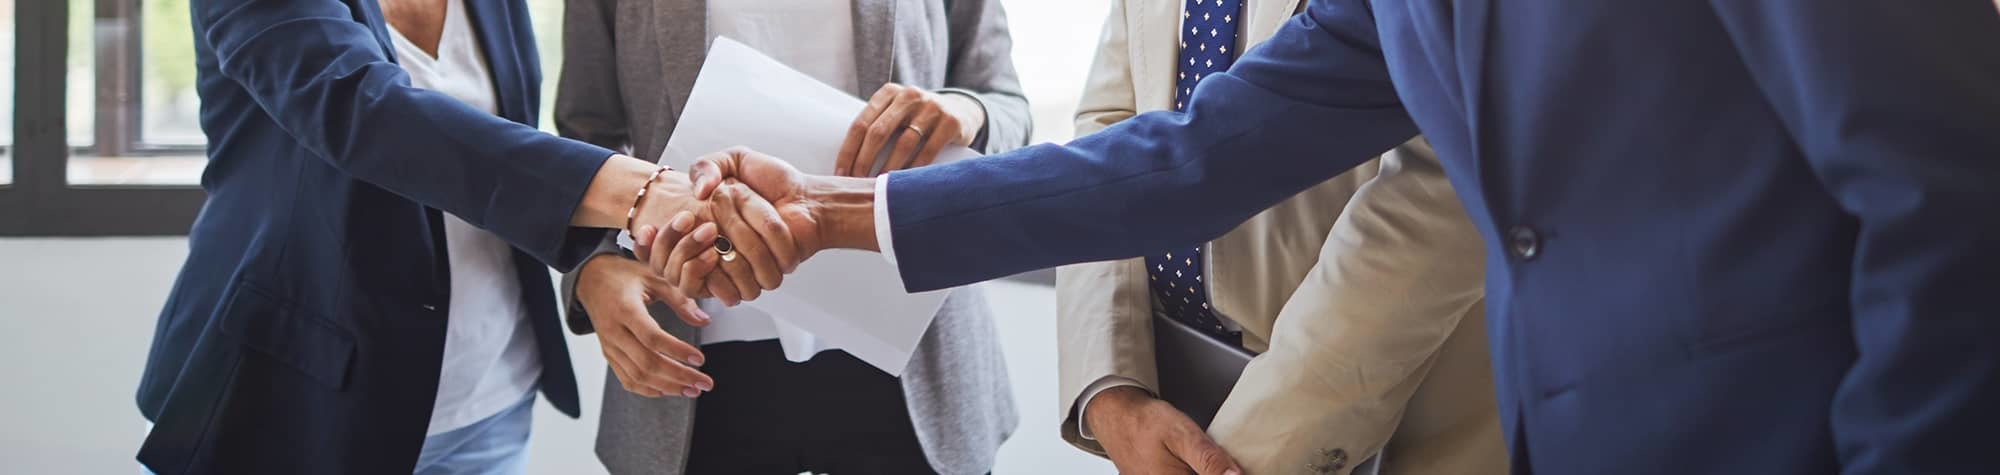 Search Services Header Image. Featuring a professional female recruiter in a blazer shaking the hand of a professional, female candidate. Showcasing the exceptional recruitment services we deliver to candidates and clients at Search Consultancy.